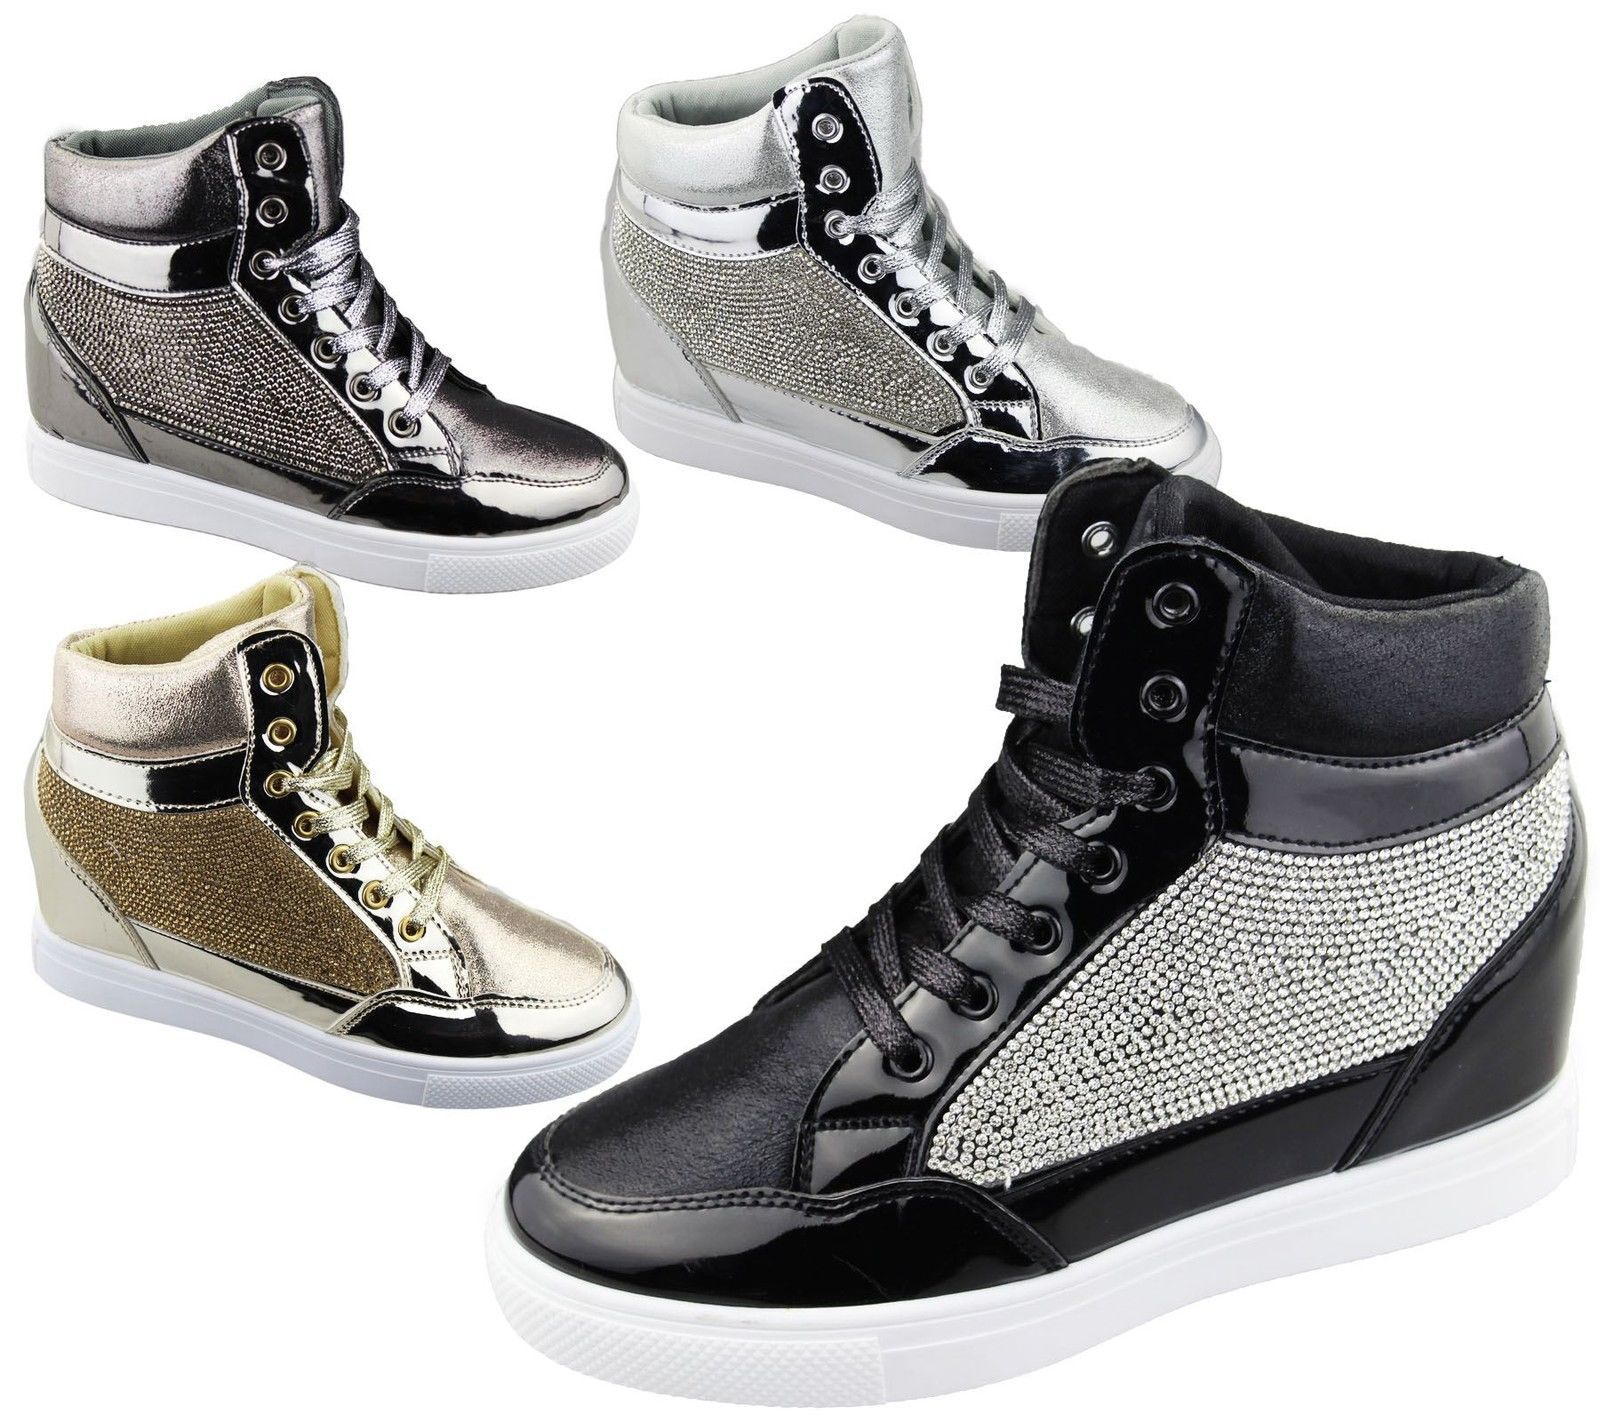 Womens Wedge Heel High Top Ankle Boot La s Diamante Summer Shoes